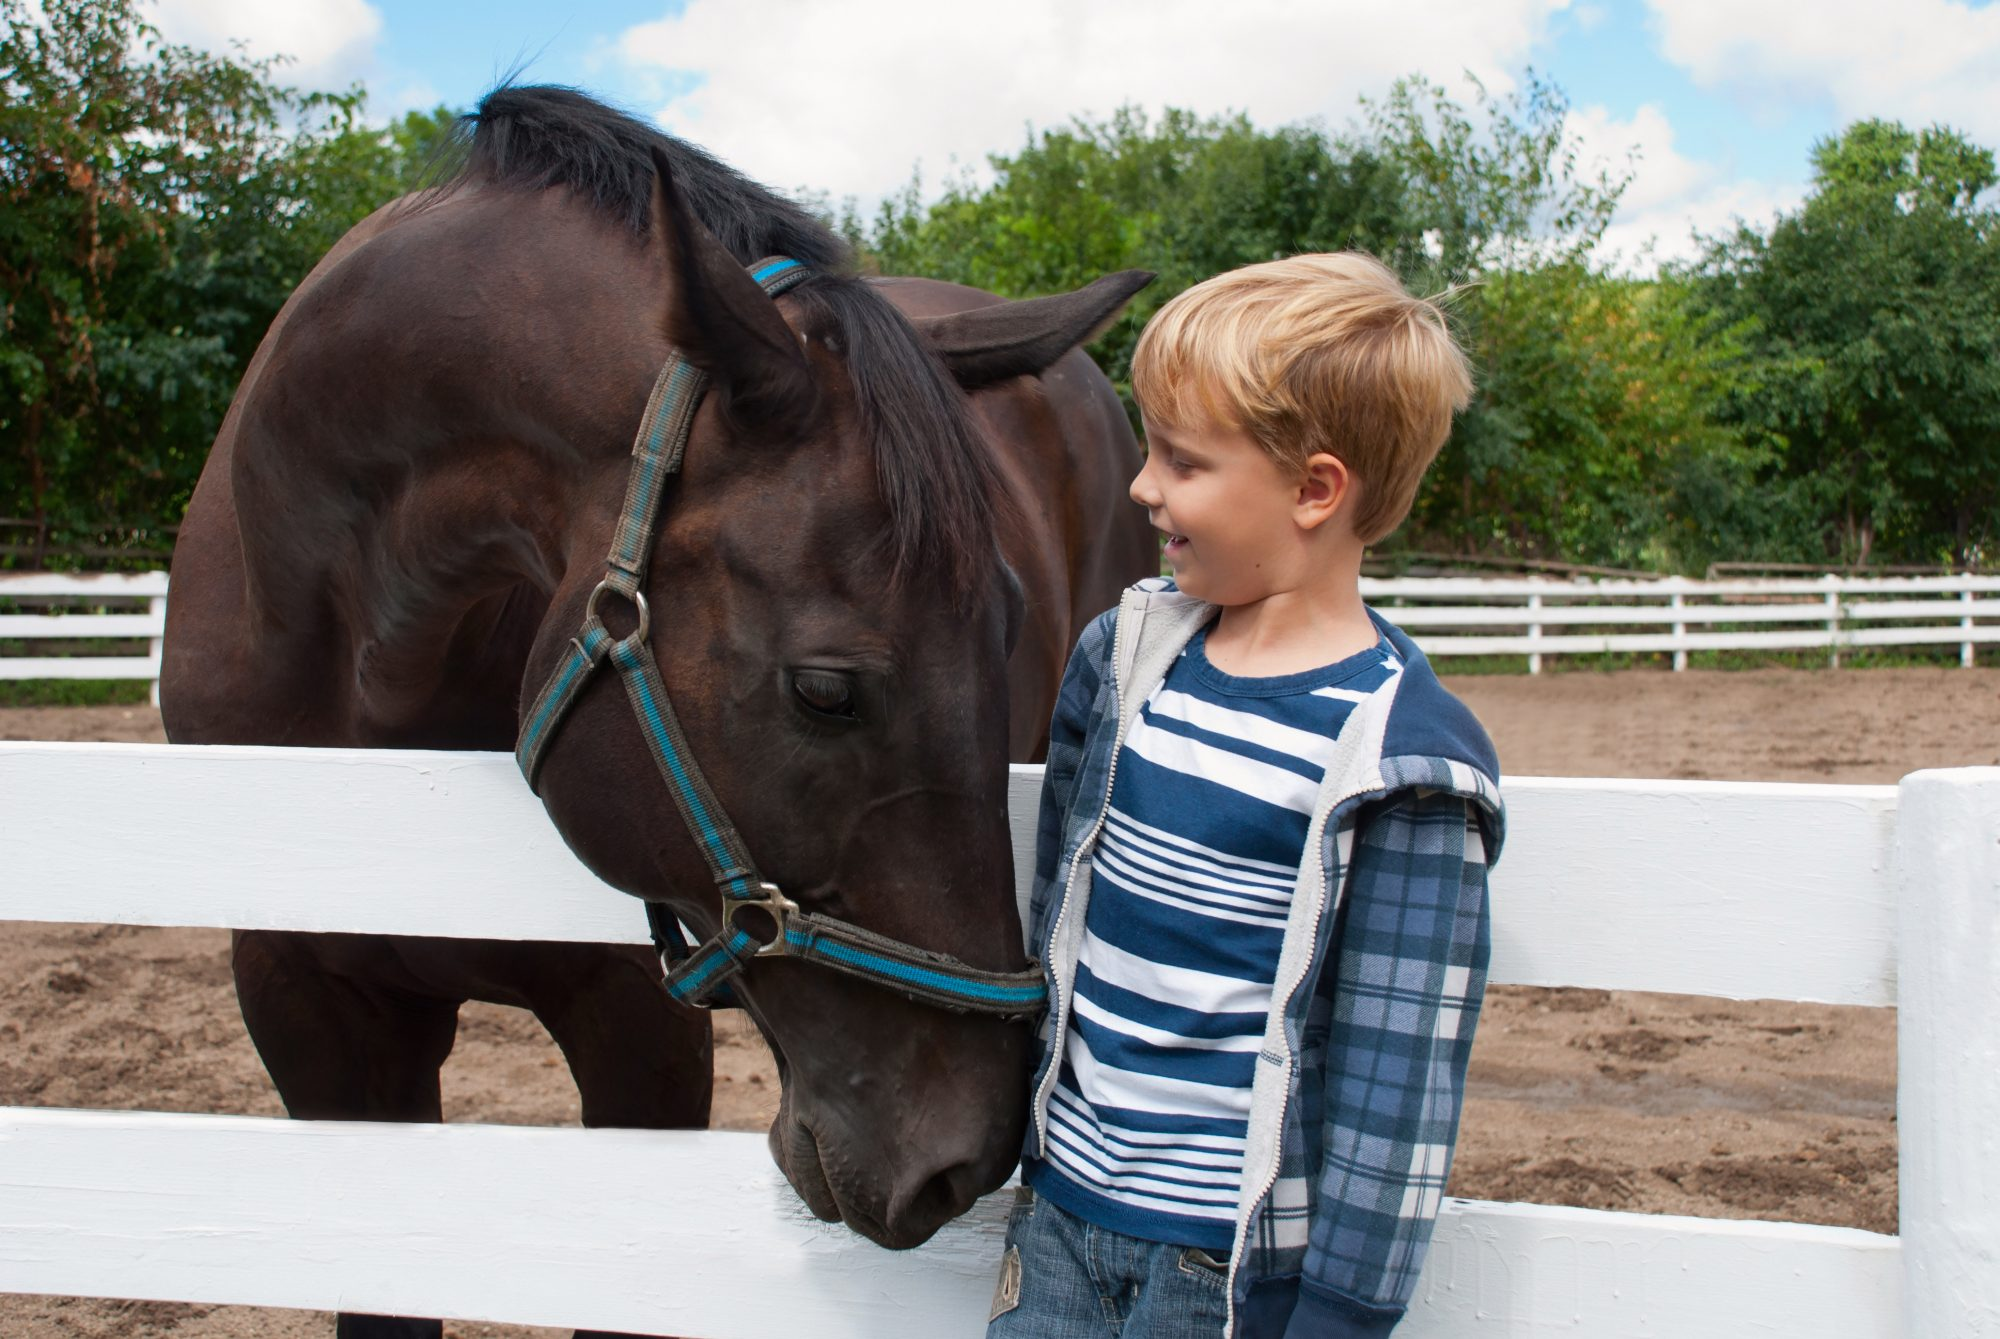 Young boy with brown horse